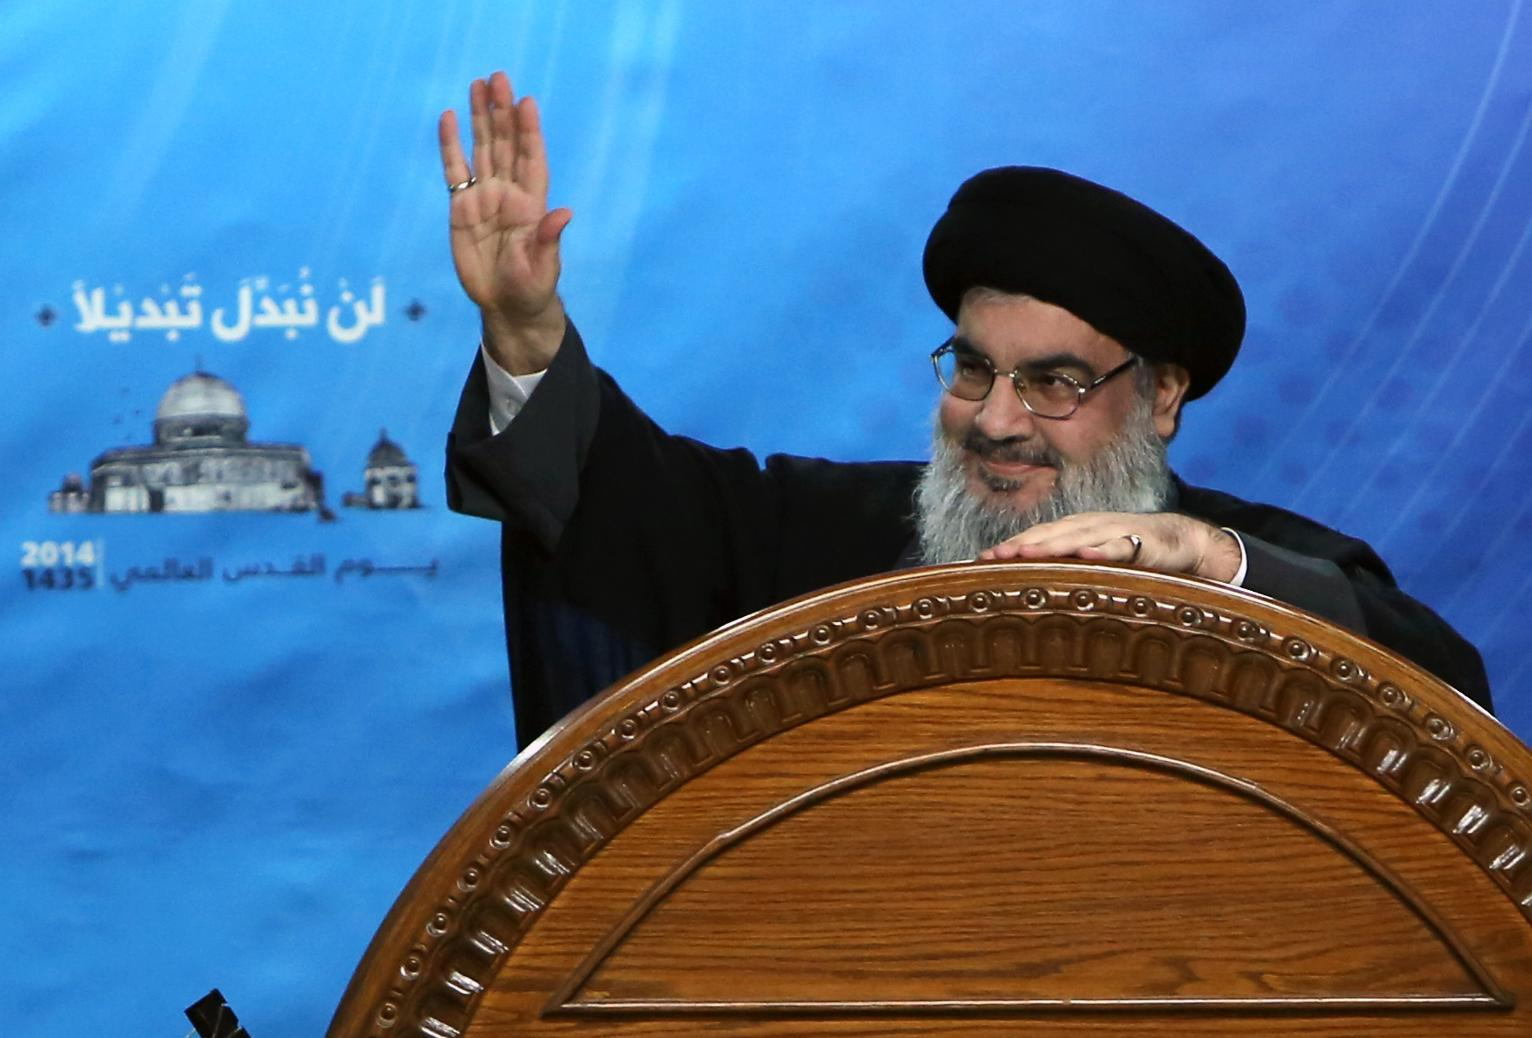 Hezbollah leader vows to support Gazans - US News